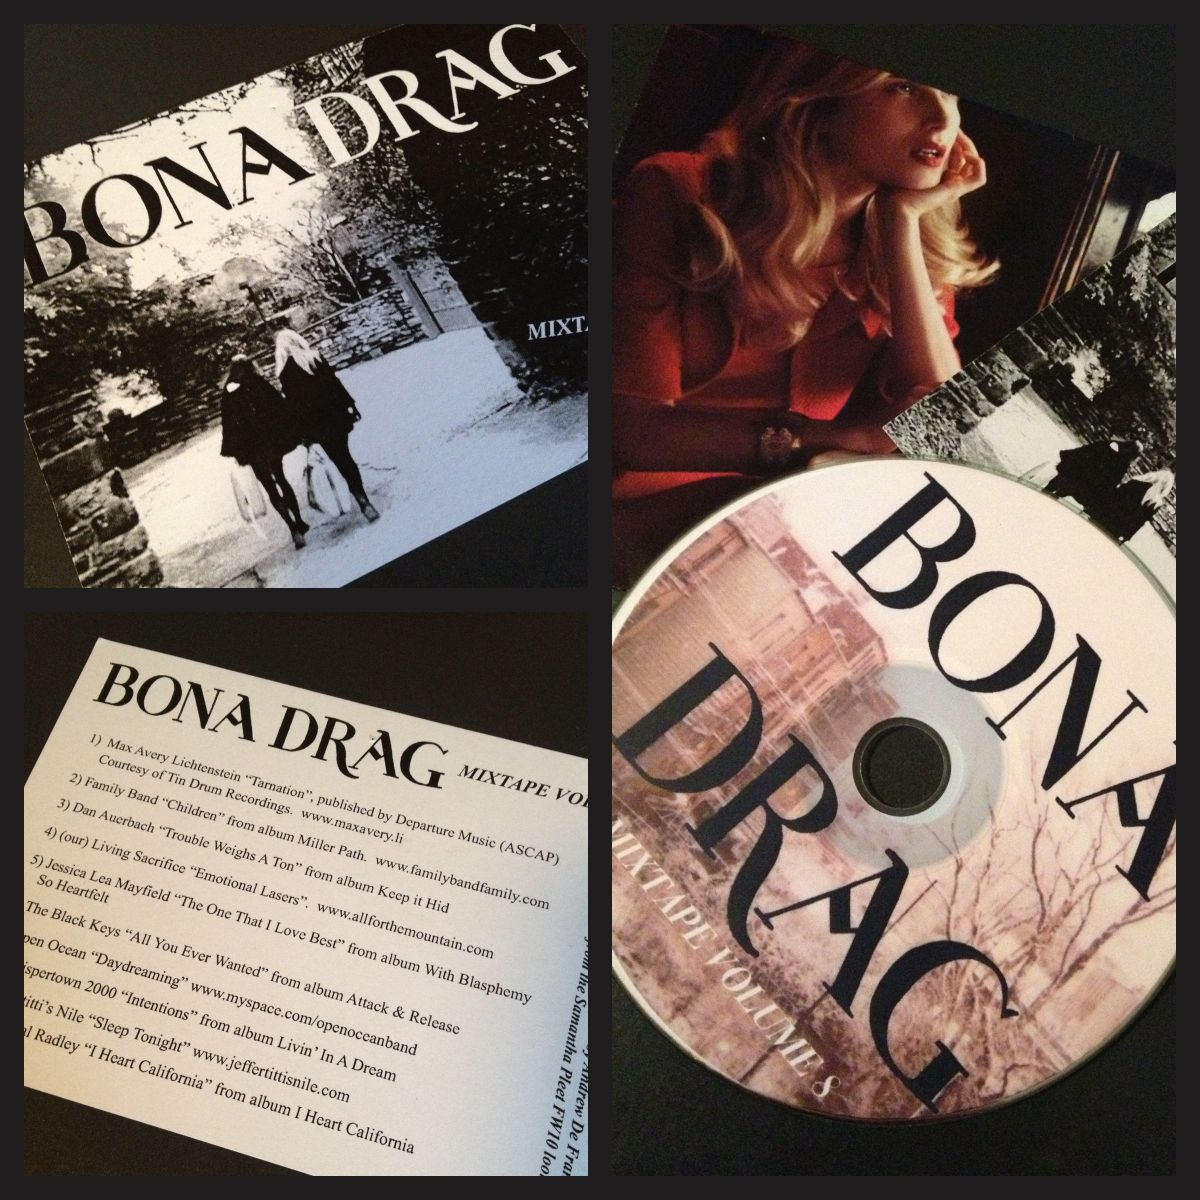 Bona Drag Mixtape